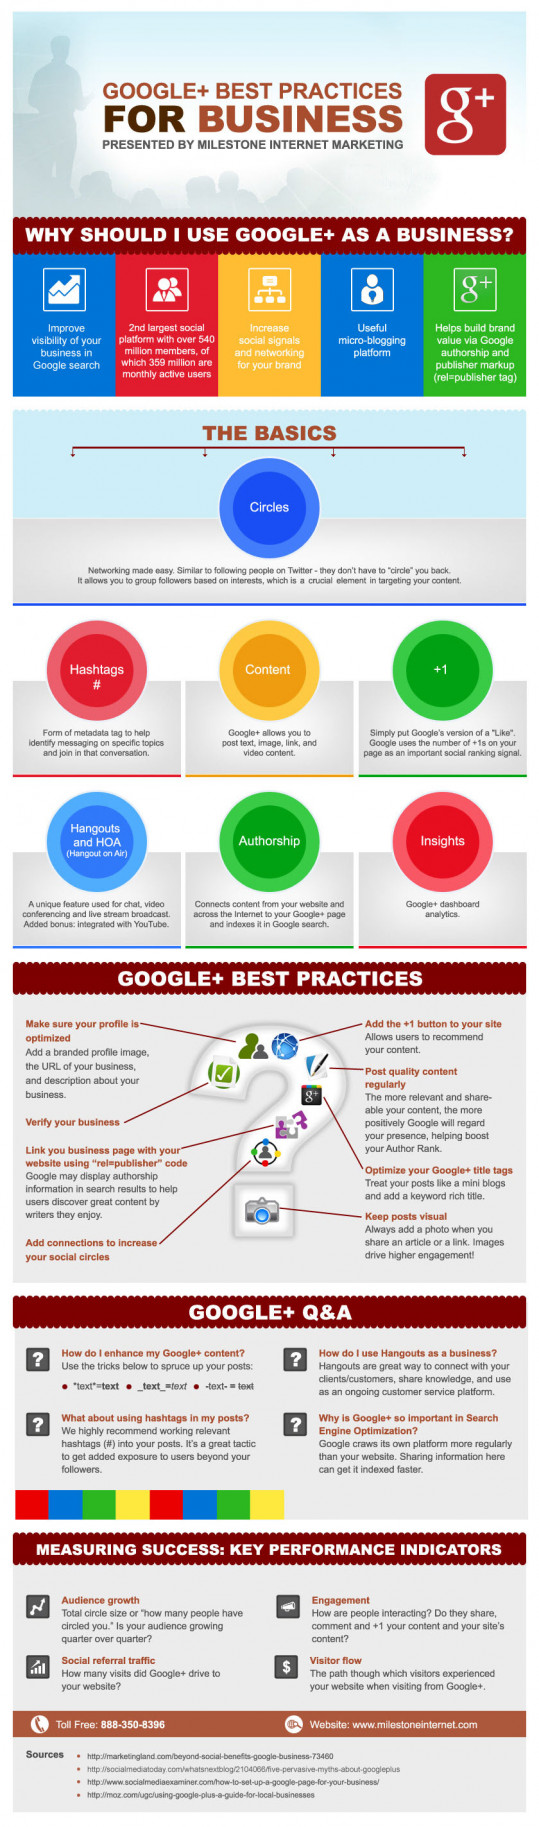 Milestone Internet MarketingGooglePluss Best Practices for Business [Infographic]